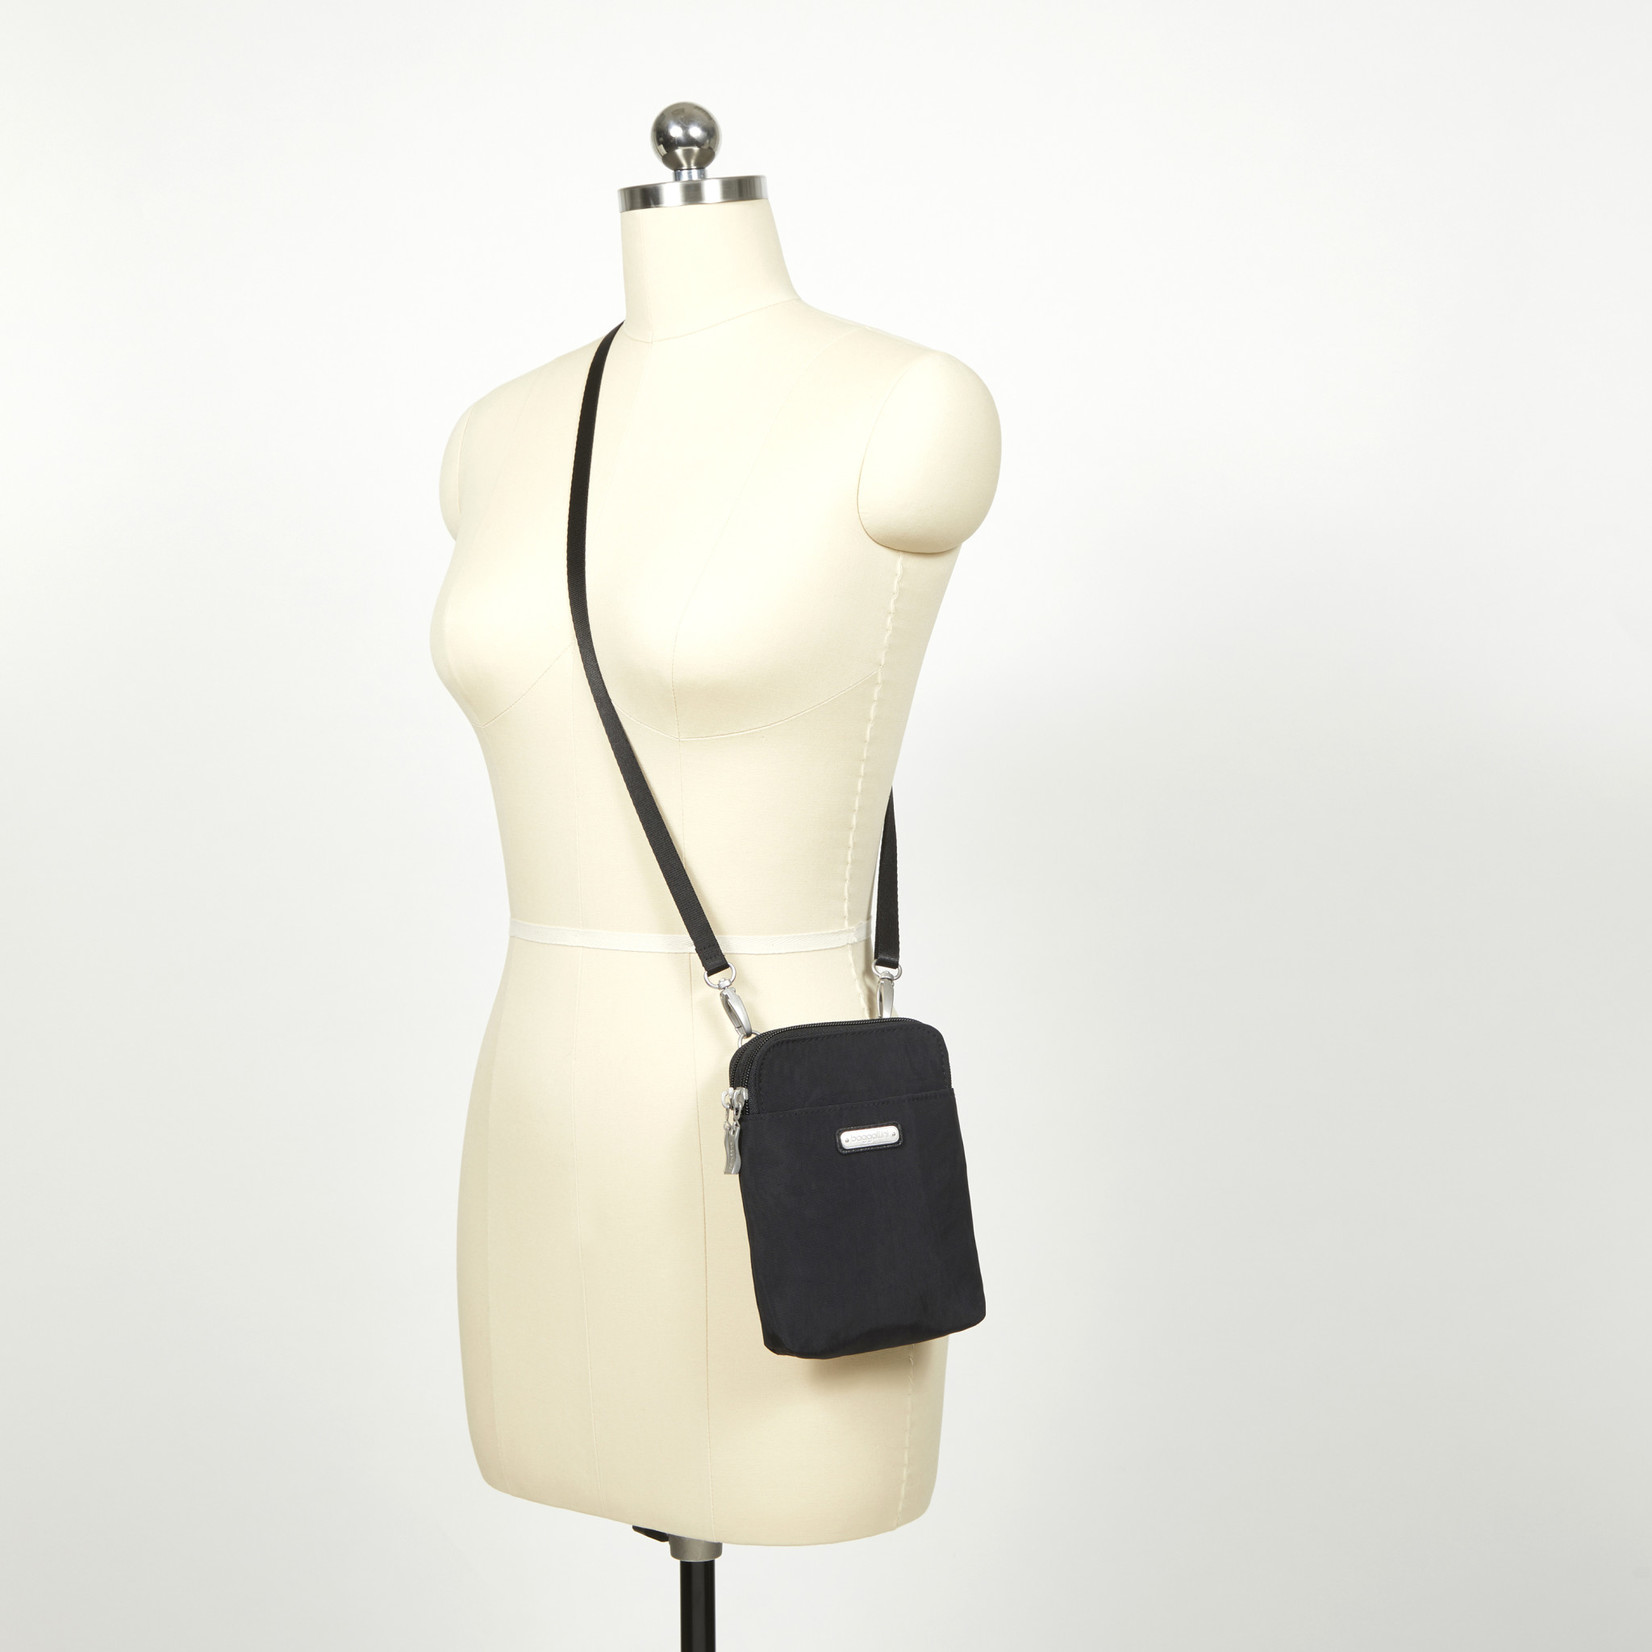 Baggallini Take Two RFID Bryant Crossbody - Black Cheetah Embossed